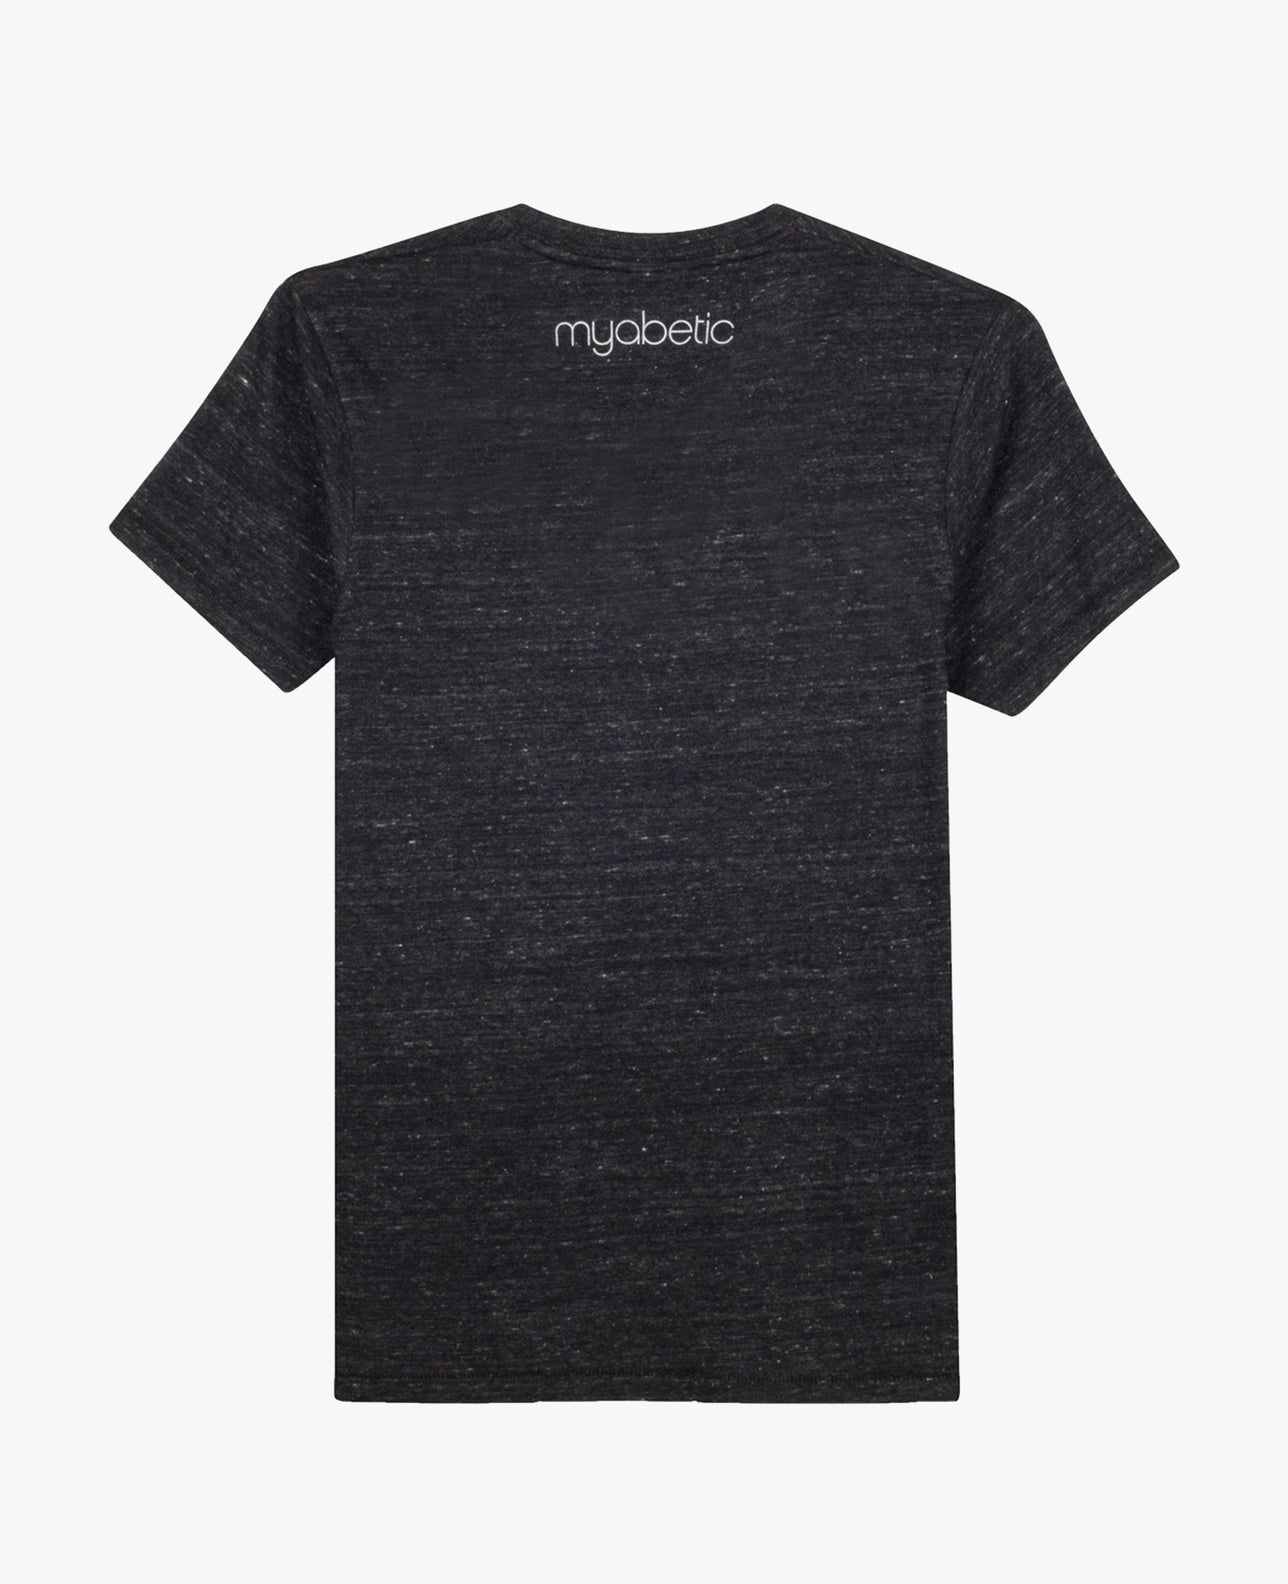 T-Shirt: Type Sparkly